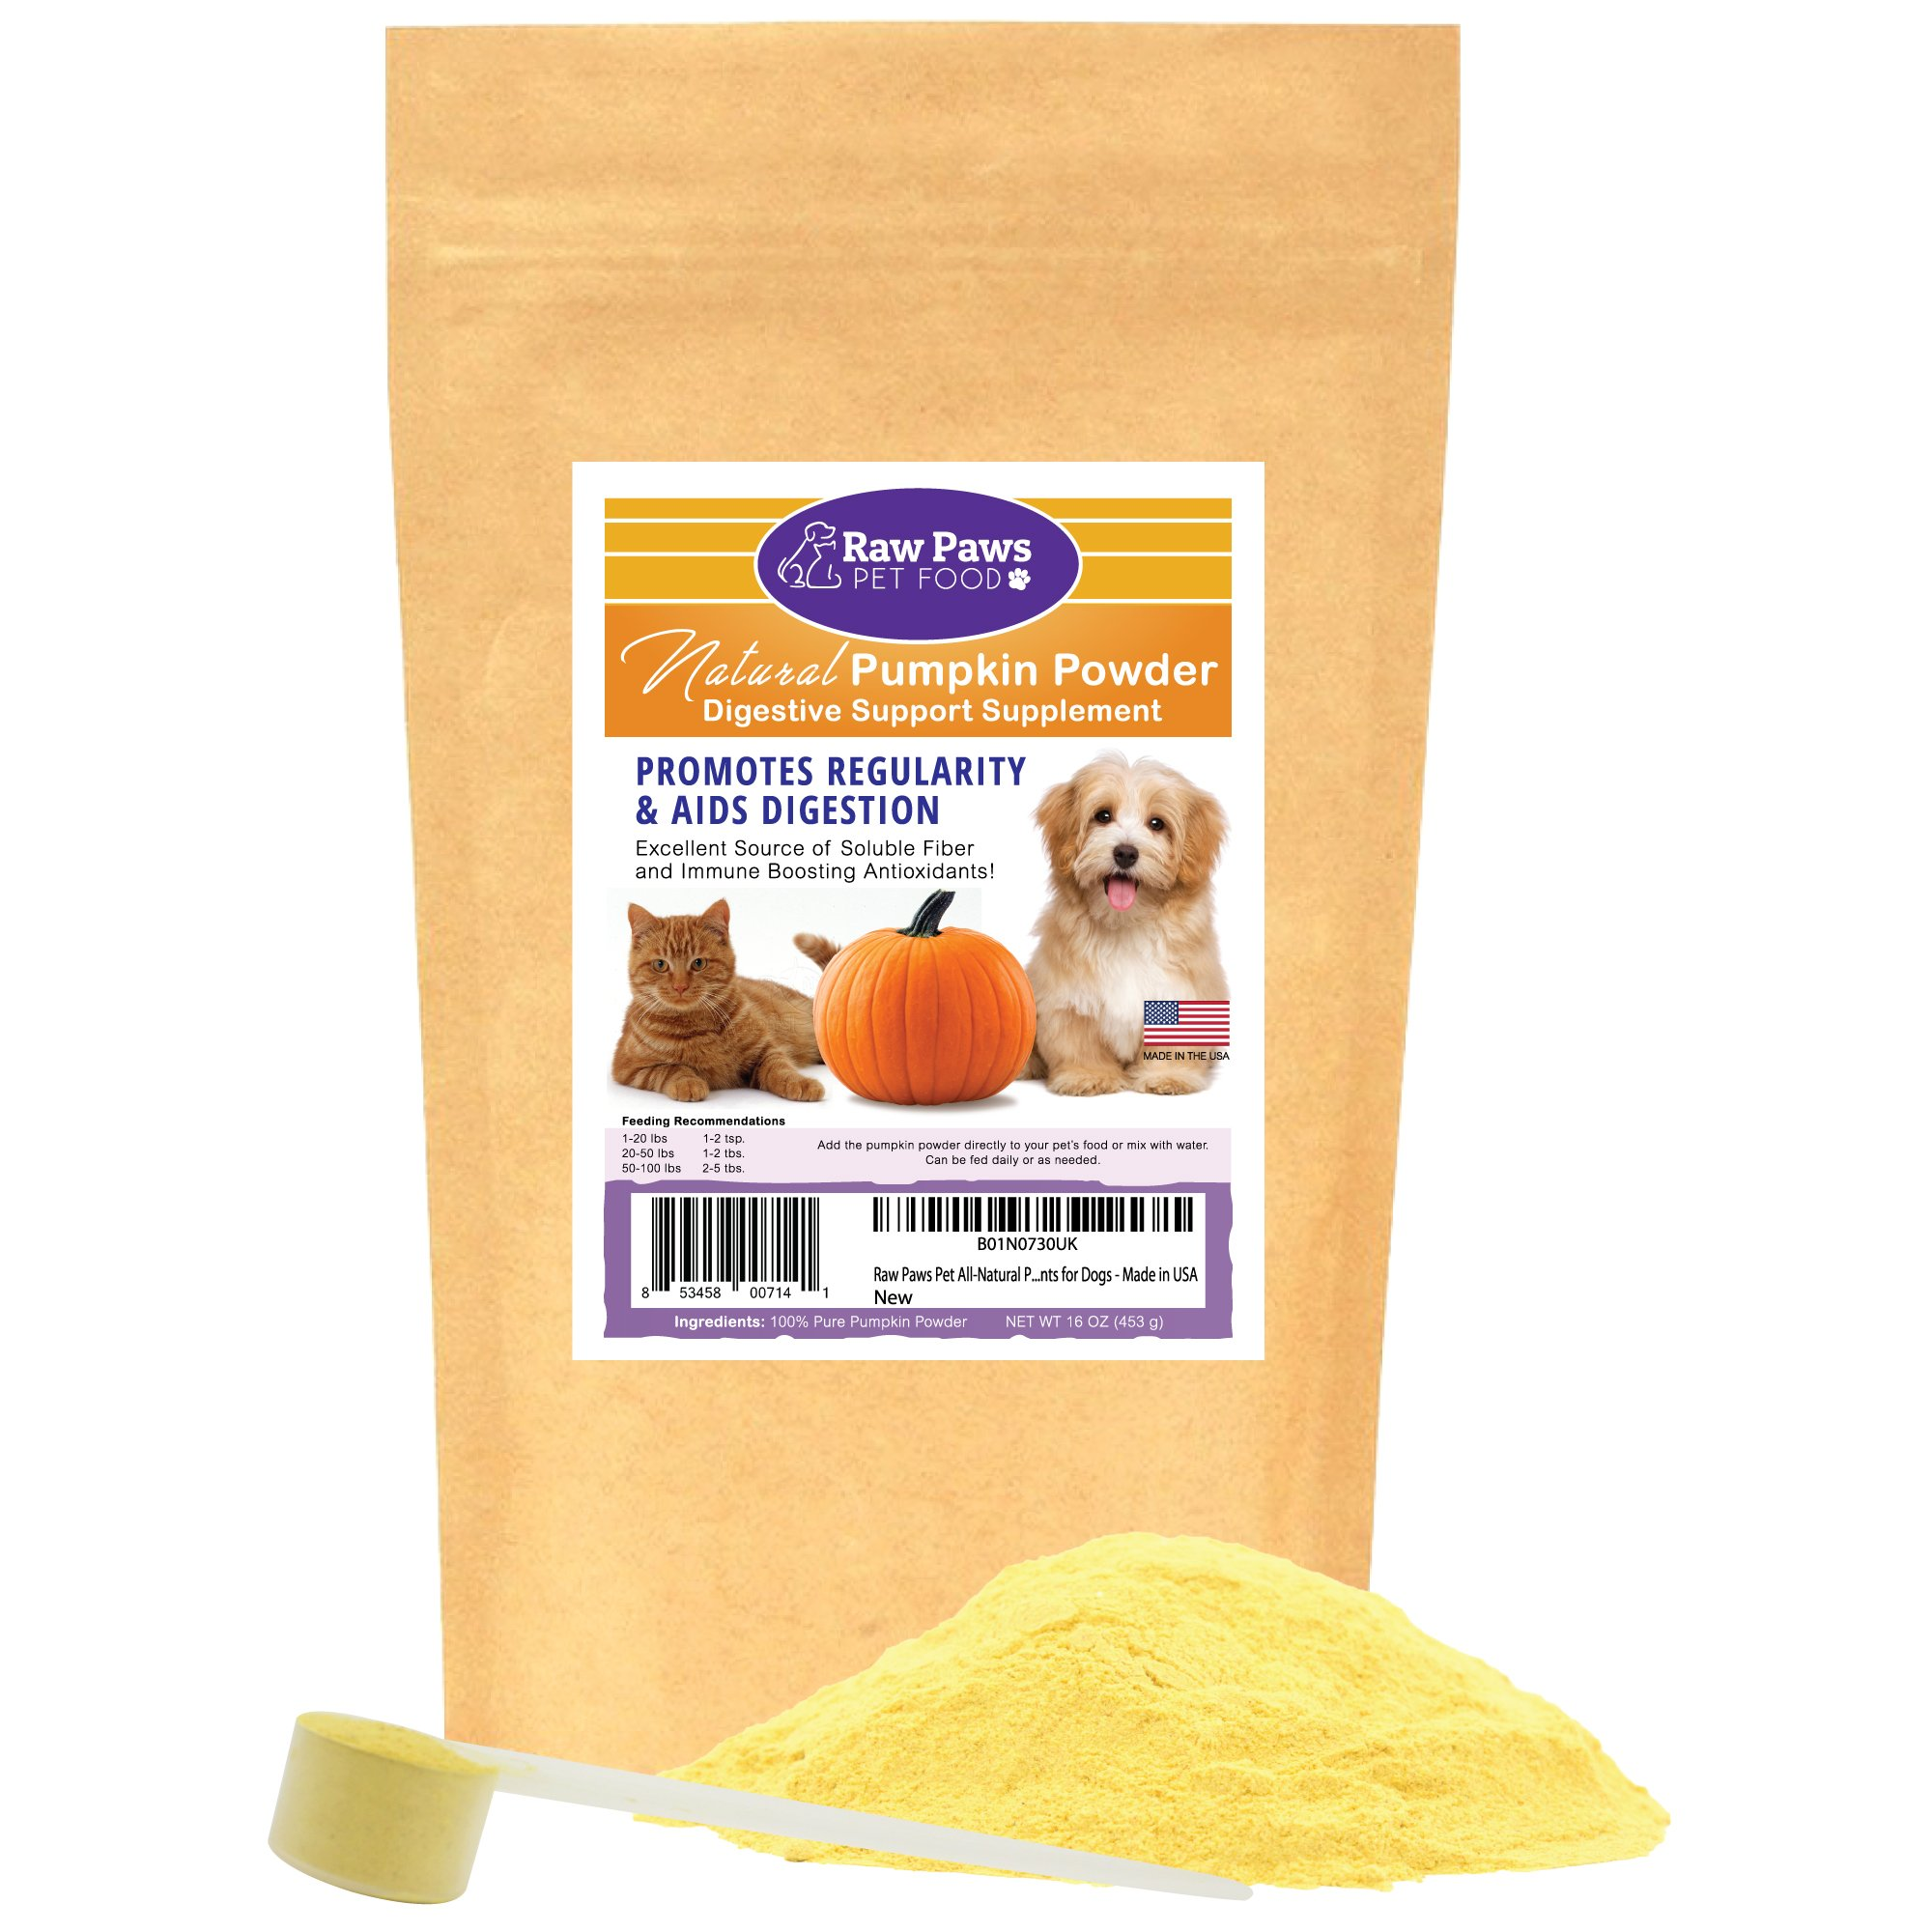 Raw Paws Pet Organic Pure Pumpkin for Dogs & Cats, Powder 16-oz - Fiber for Dogs - Cat & Dog Digestive Supplement for Healthy Stool, Regularity, Dog Gas Relief & Anti Scoot - Cat & Dog Diarrhea Relief